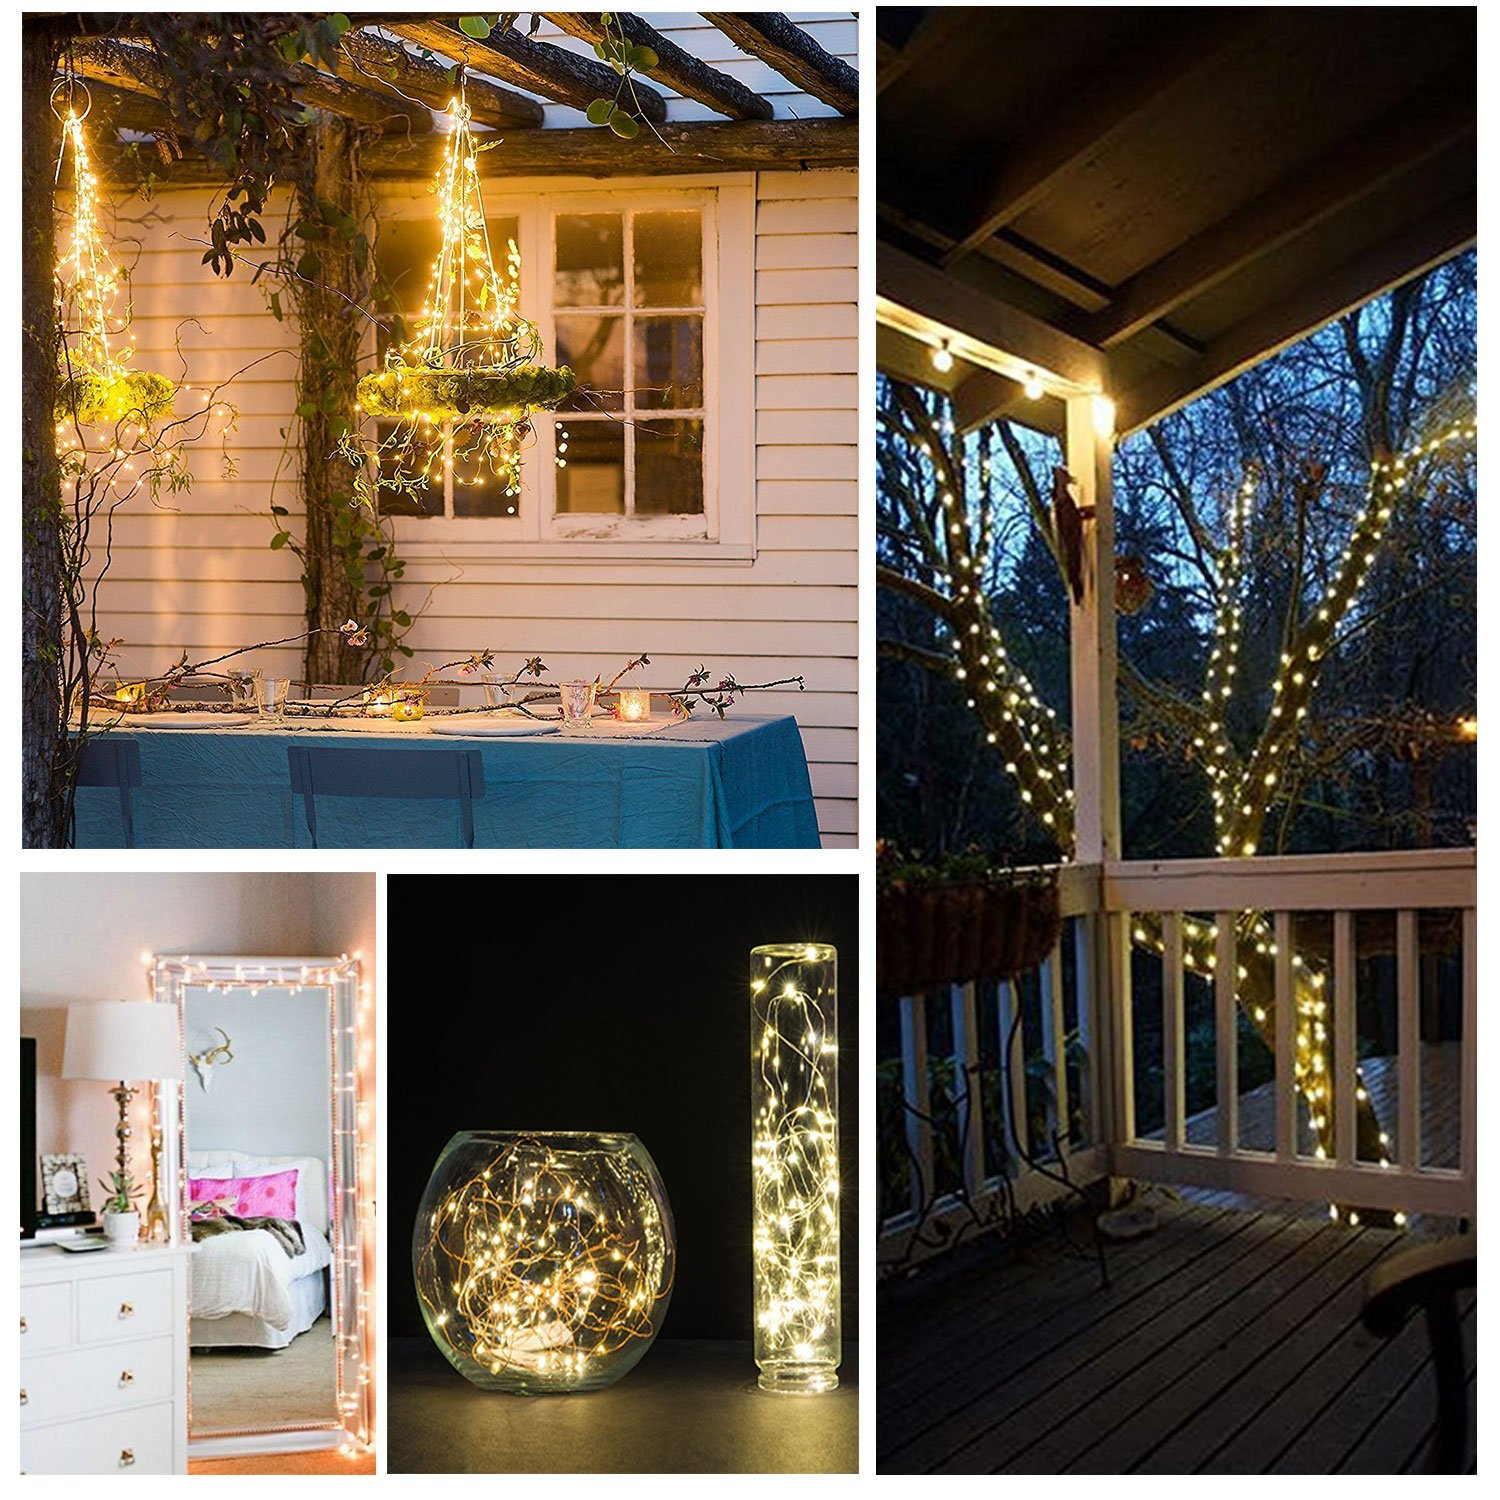 JMEXSUSS 8 Modes Timer Remote Control 200 LED 65.6ft Battery Operated Waterproof Dimmable Fairy String Copper Wire Lights for Christmas, Bedroom, Patio, Wedding, Party, Warm White(200LED+3AA Battery) by JMEXSUSS (Image #5)